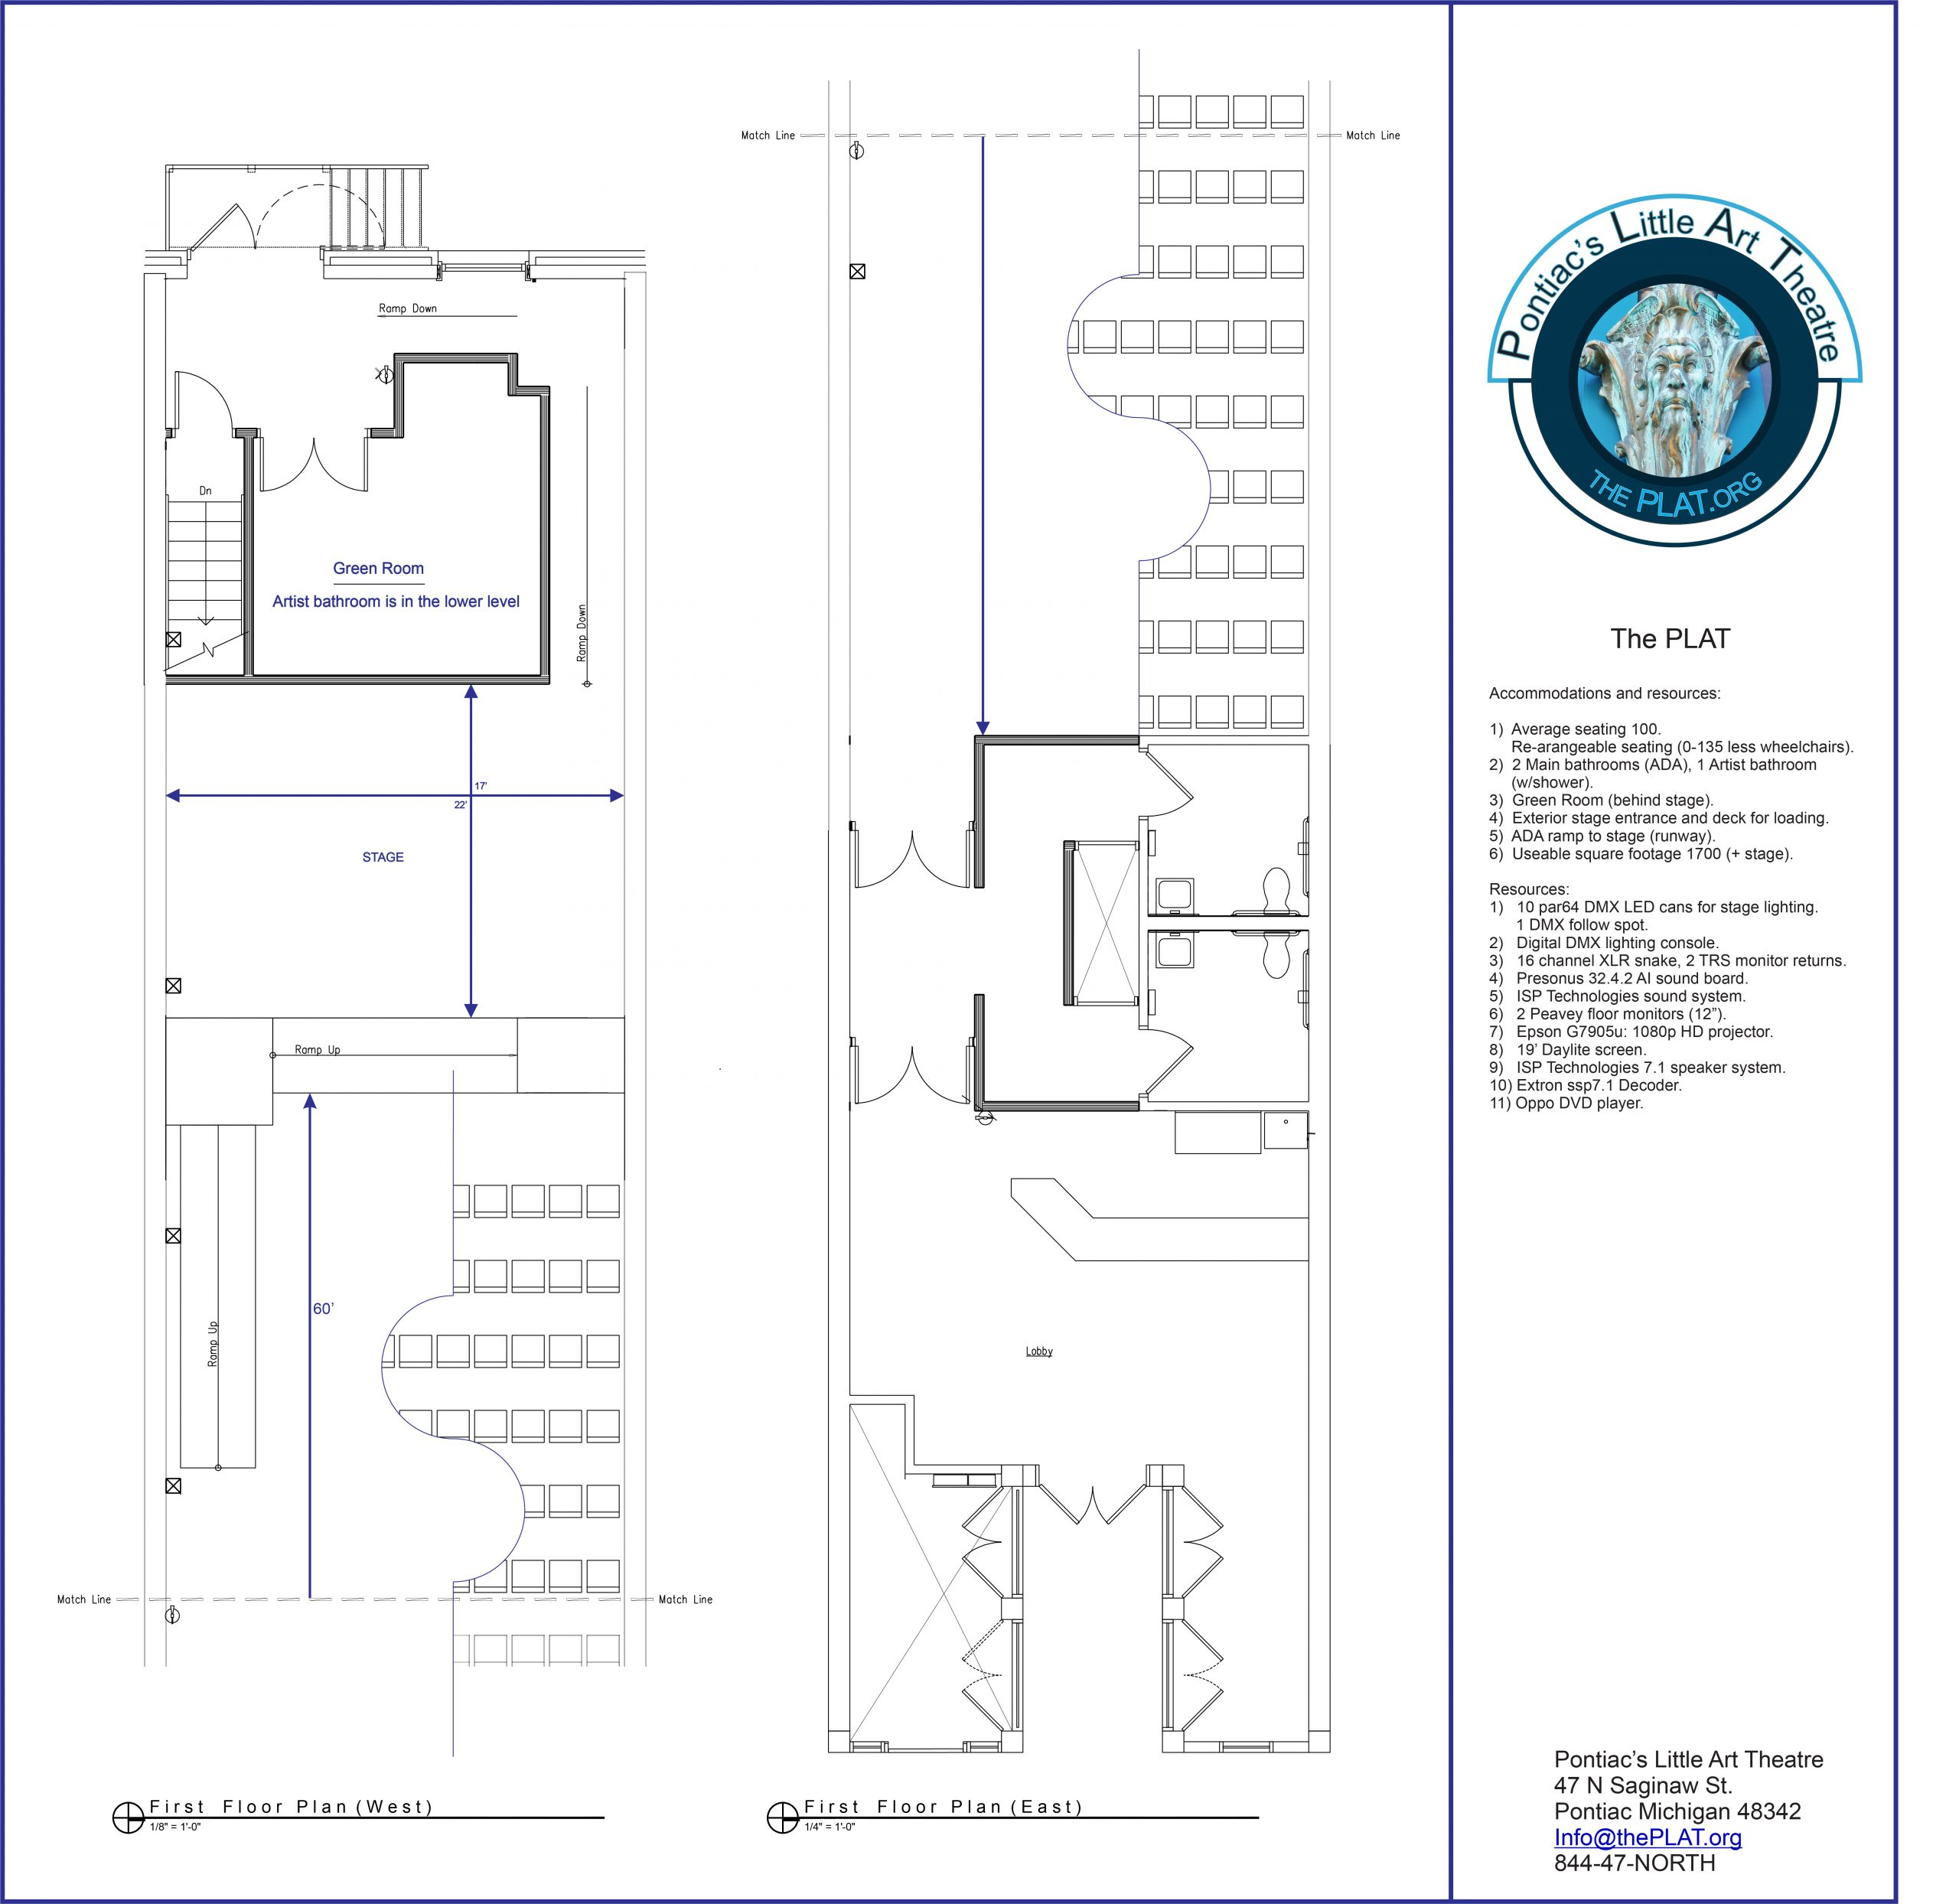 rental theater floor plan at the PLAT